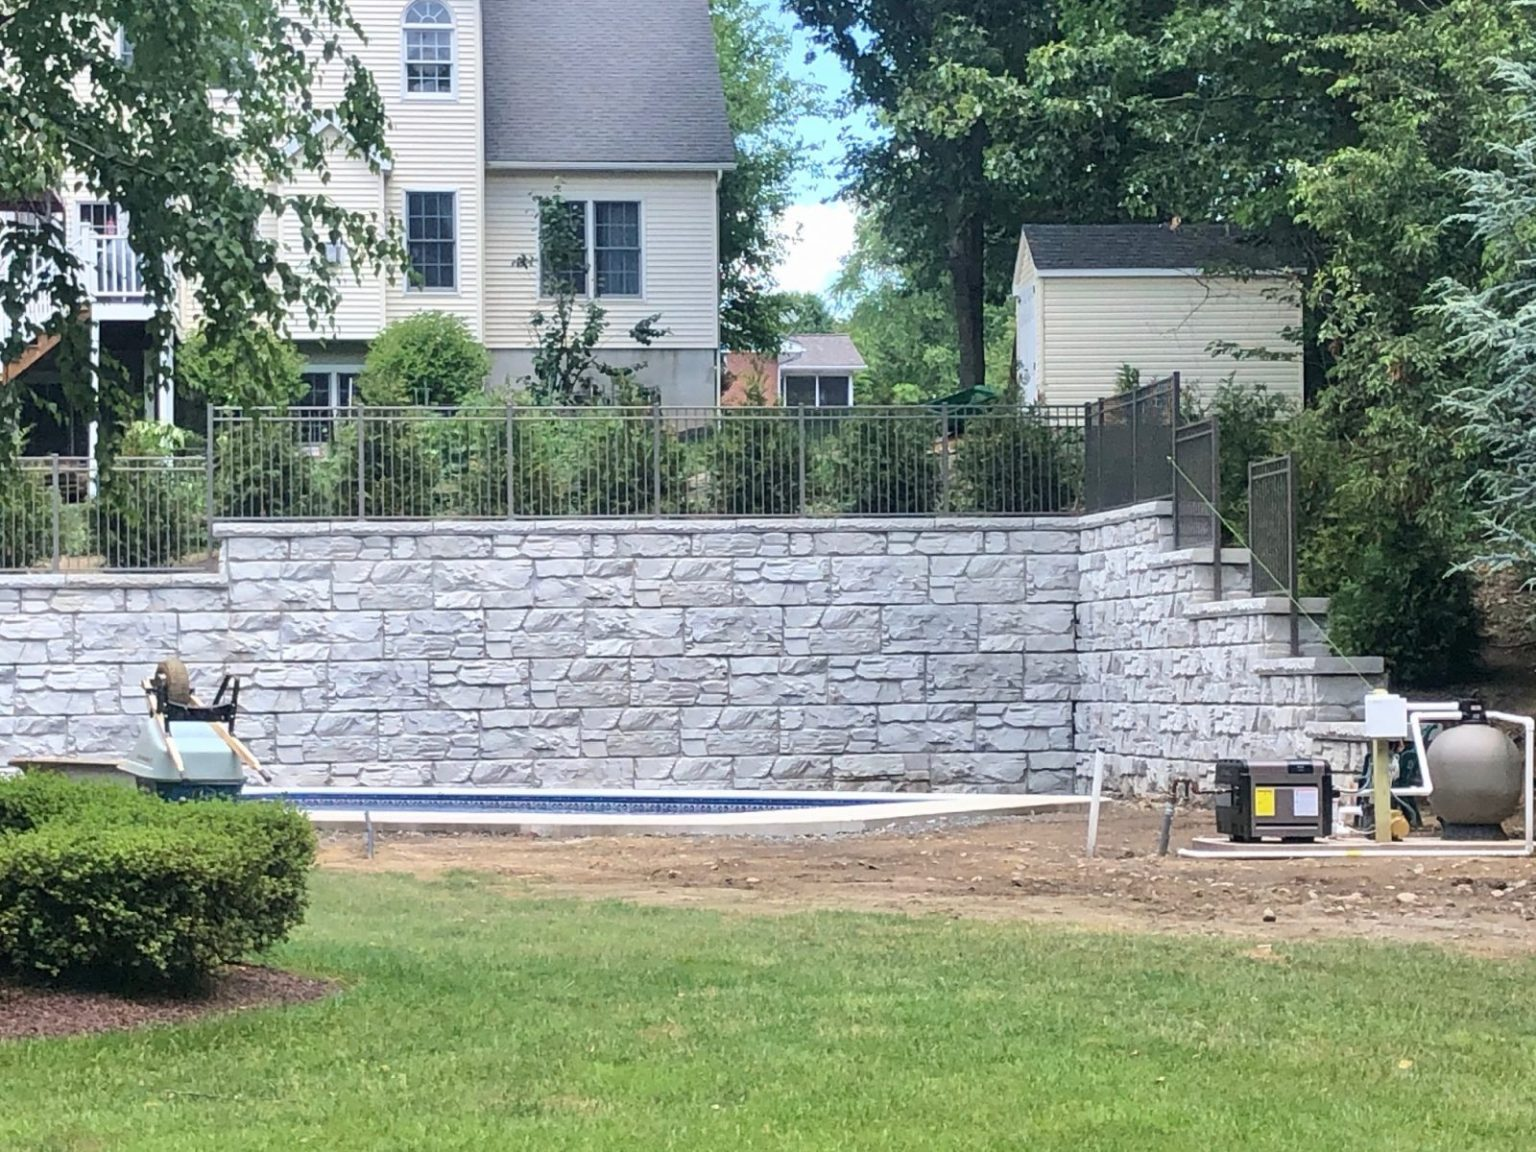 MaxumStone 12 foot retaining wall in a backyard, allowing room for a swimming pool. The wall features an inside corner and top of wall details like caps, fence posts, and step ups.